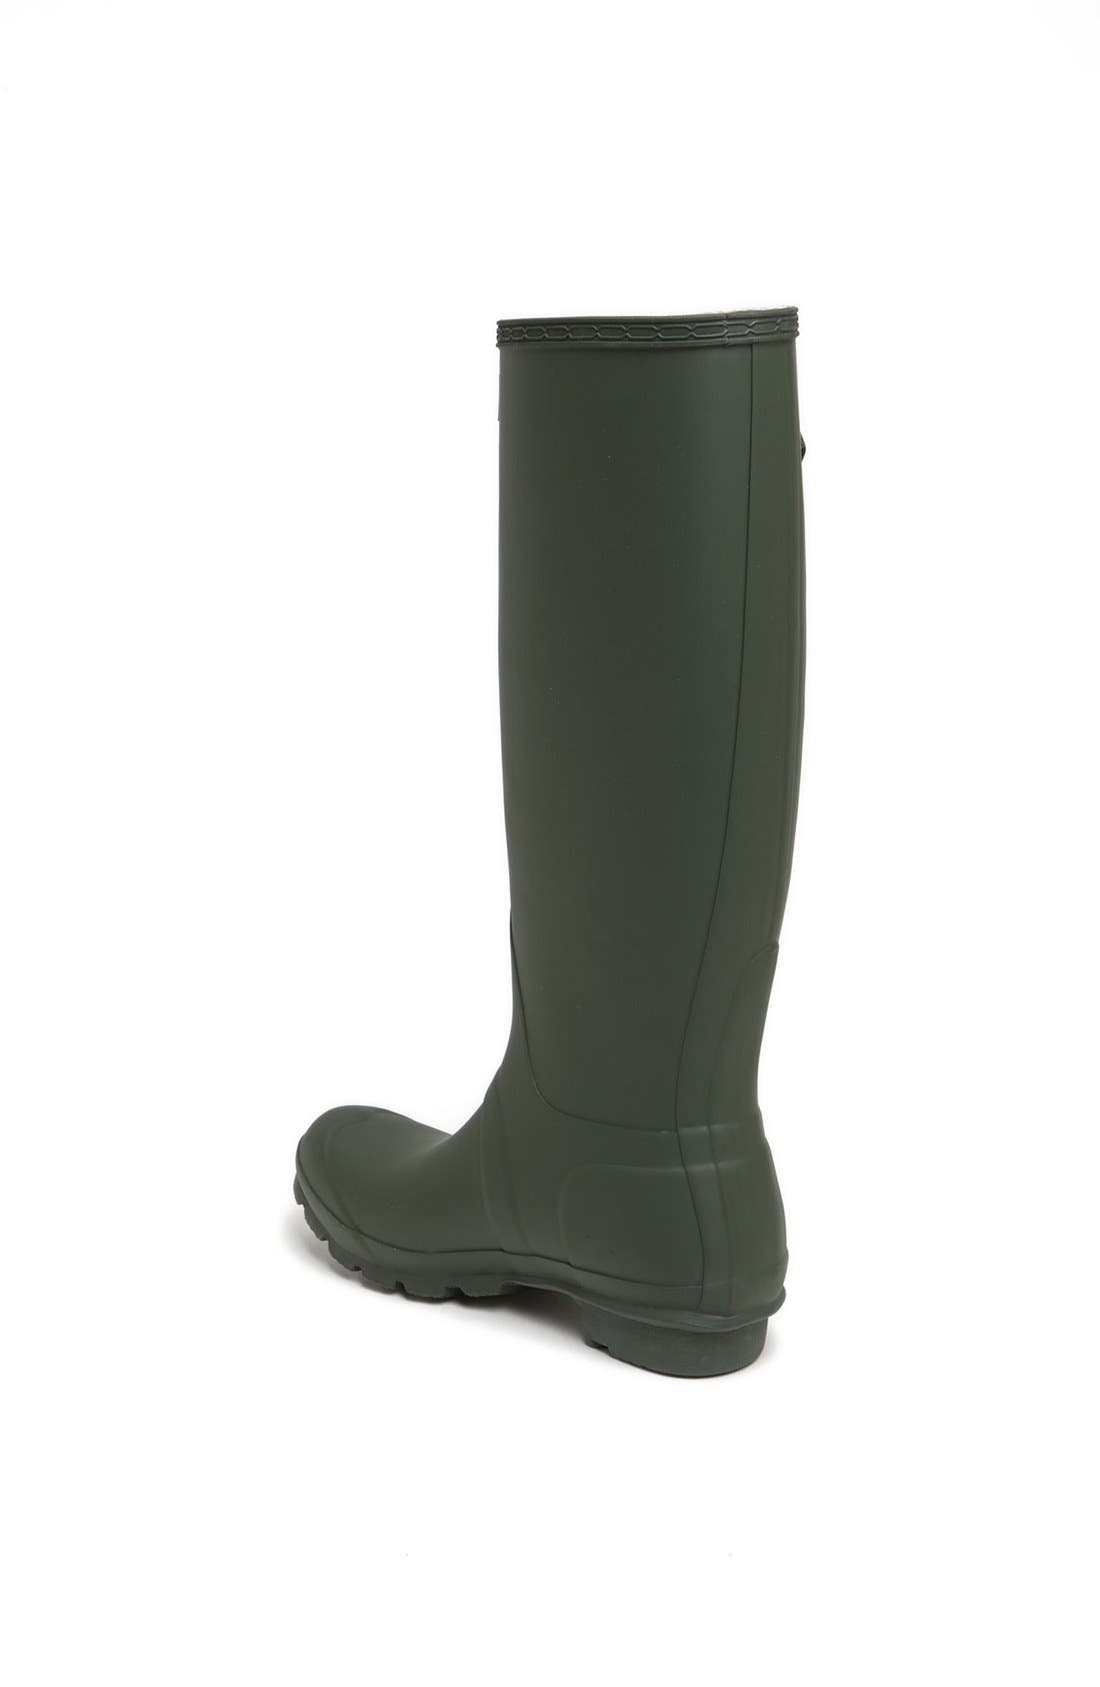 Alternate Image 2  - Hunter 'Original Tall' Rain Boot (Women)